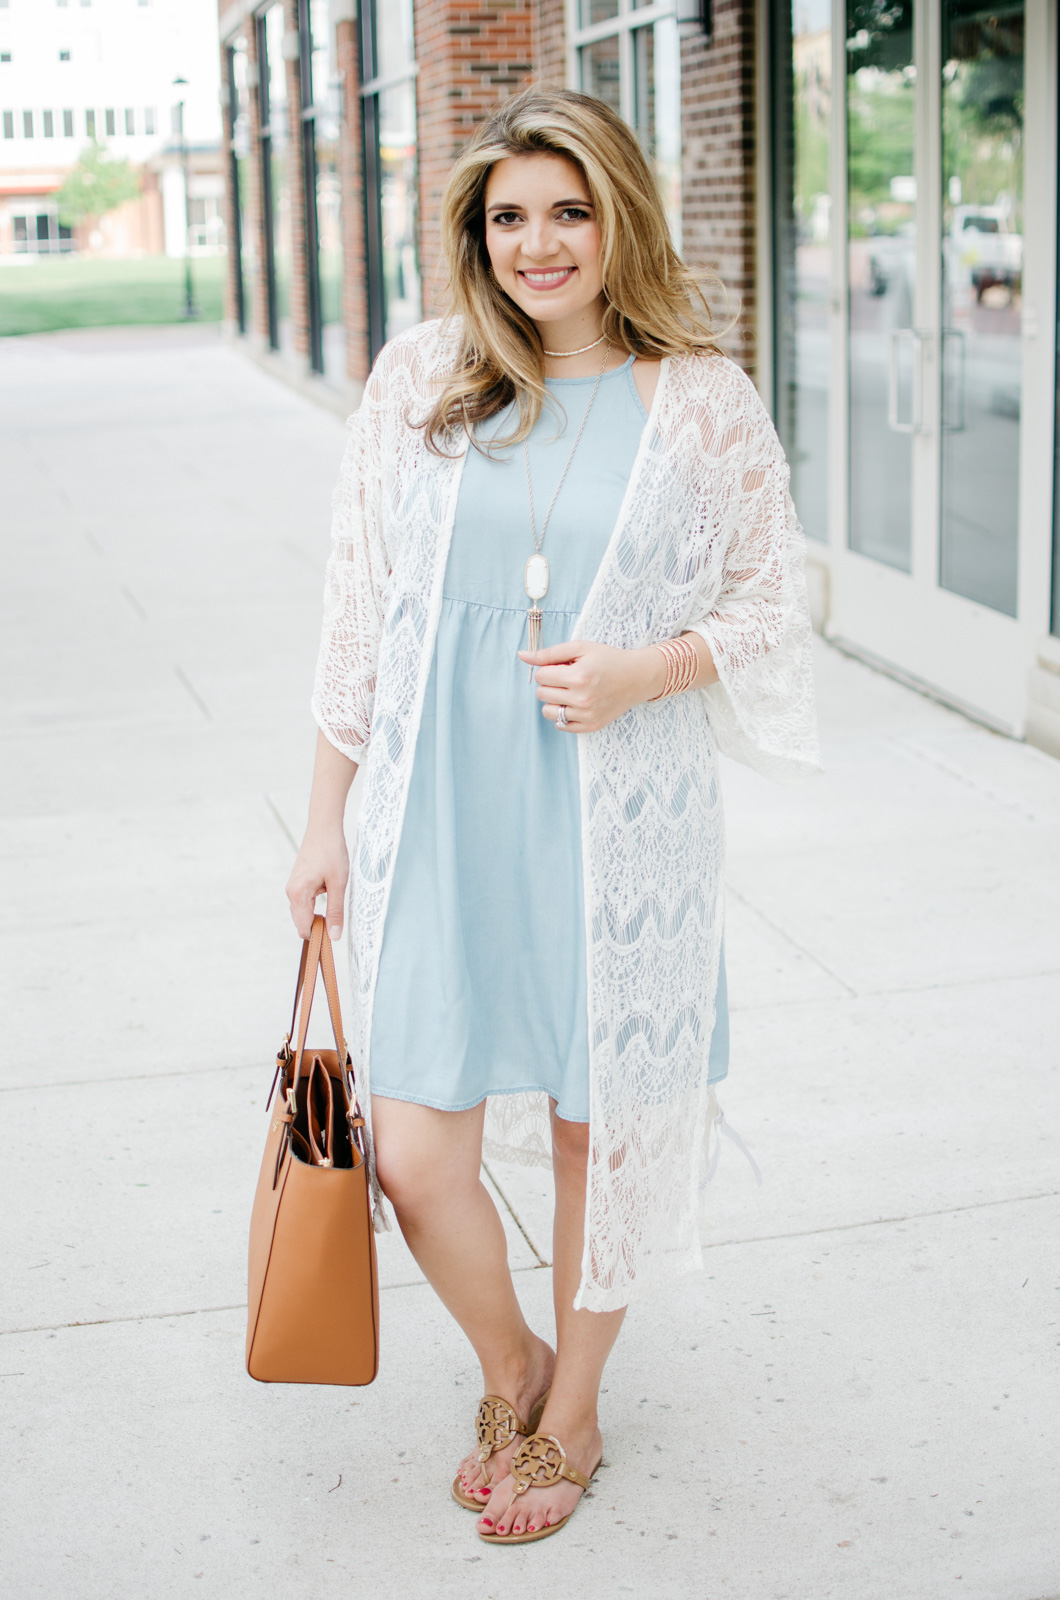 cute boho spring outfit | For more cute Spring outfits, head to bylaurenm.com